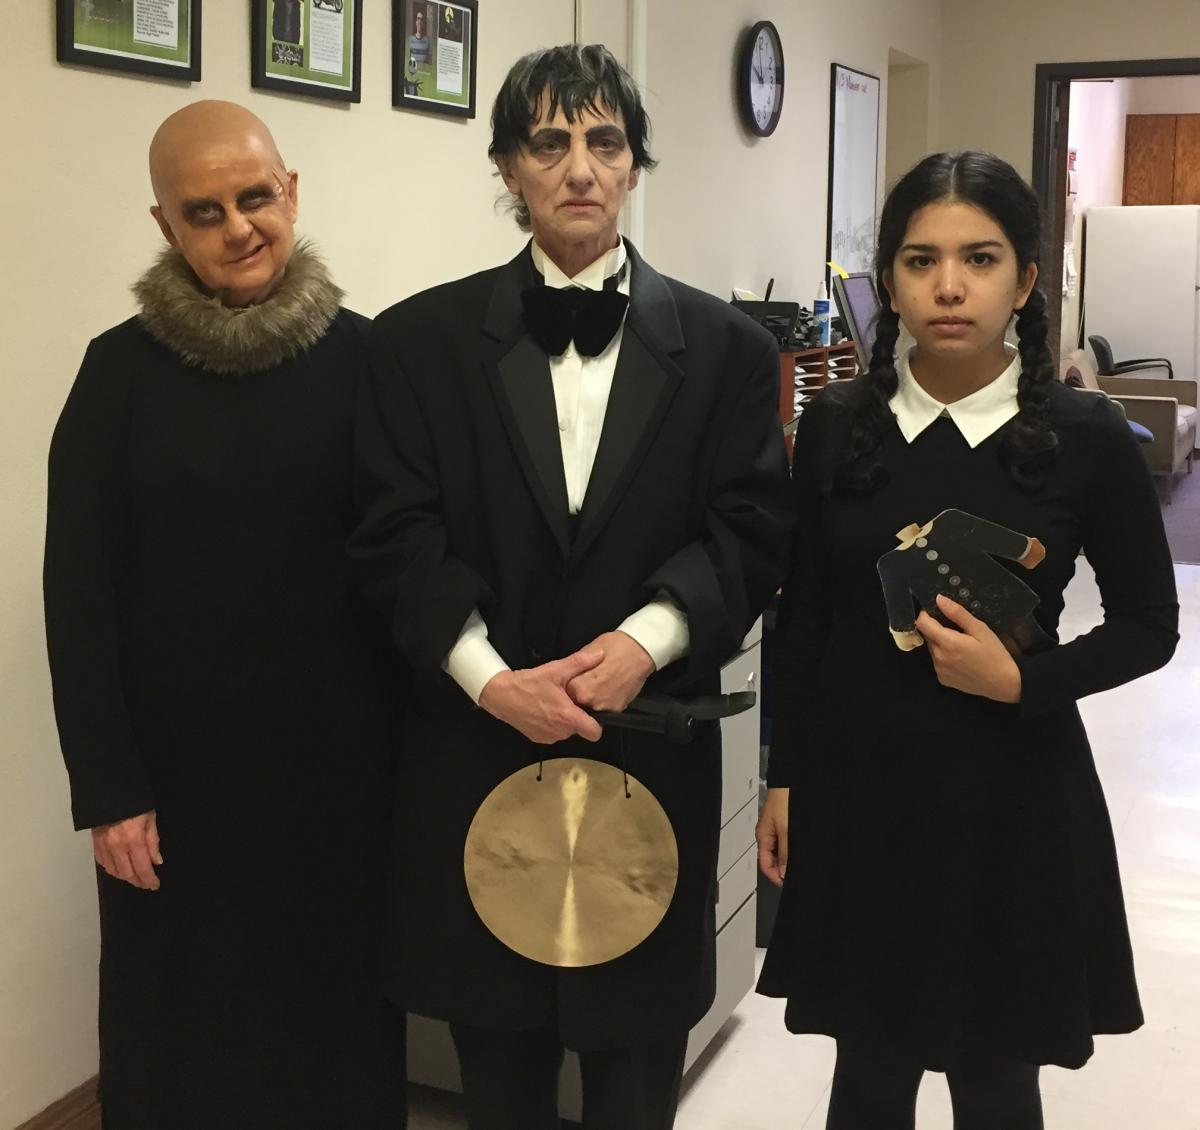 Fester and Lurch Costumes